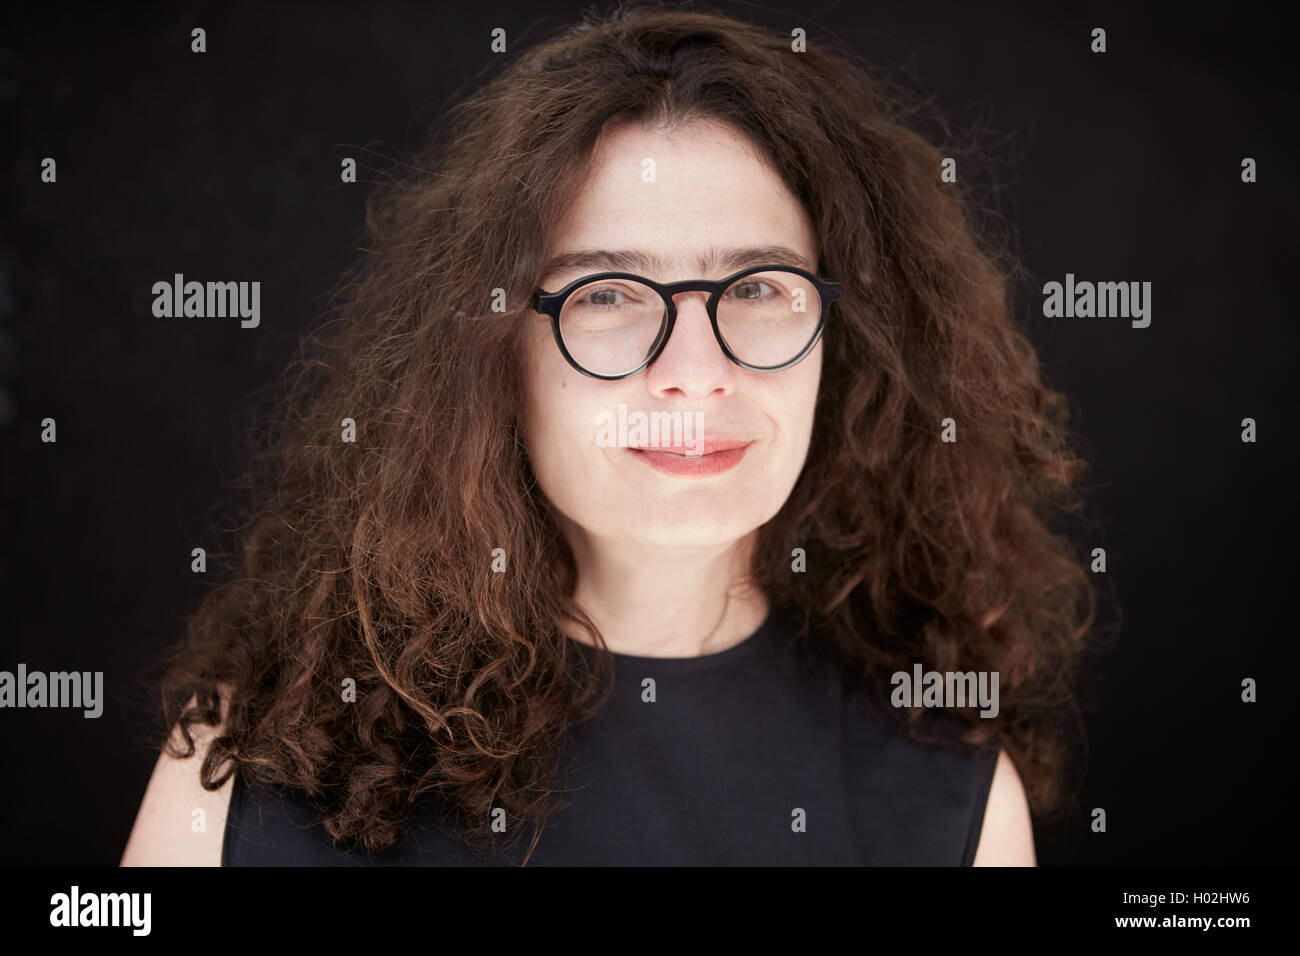 Arsinée Khanjian, actress and film producer, seen during festival in Italy on July 2016 - Stock Image